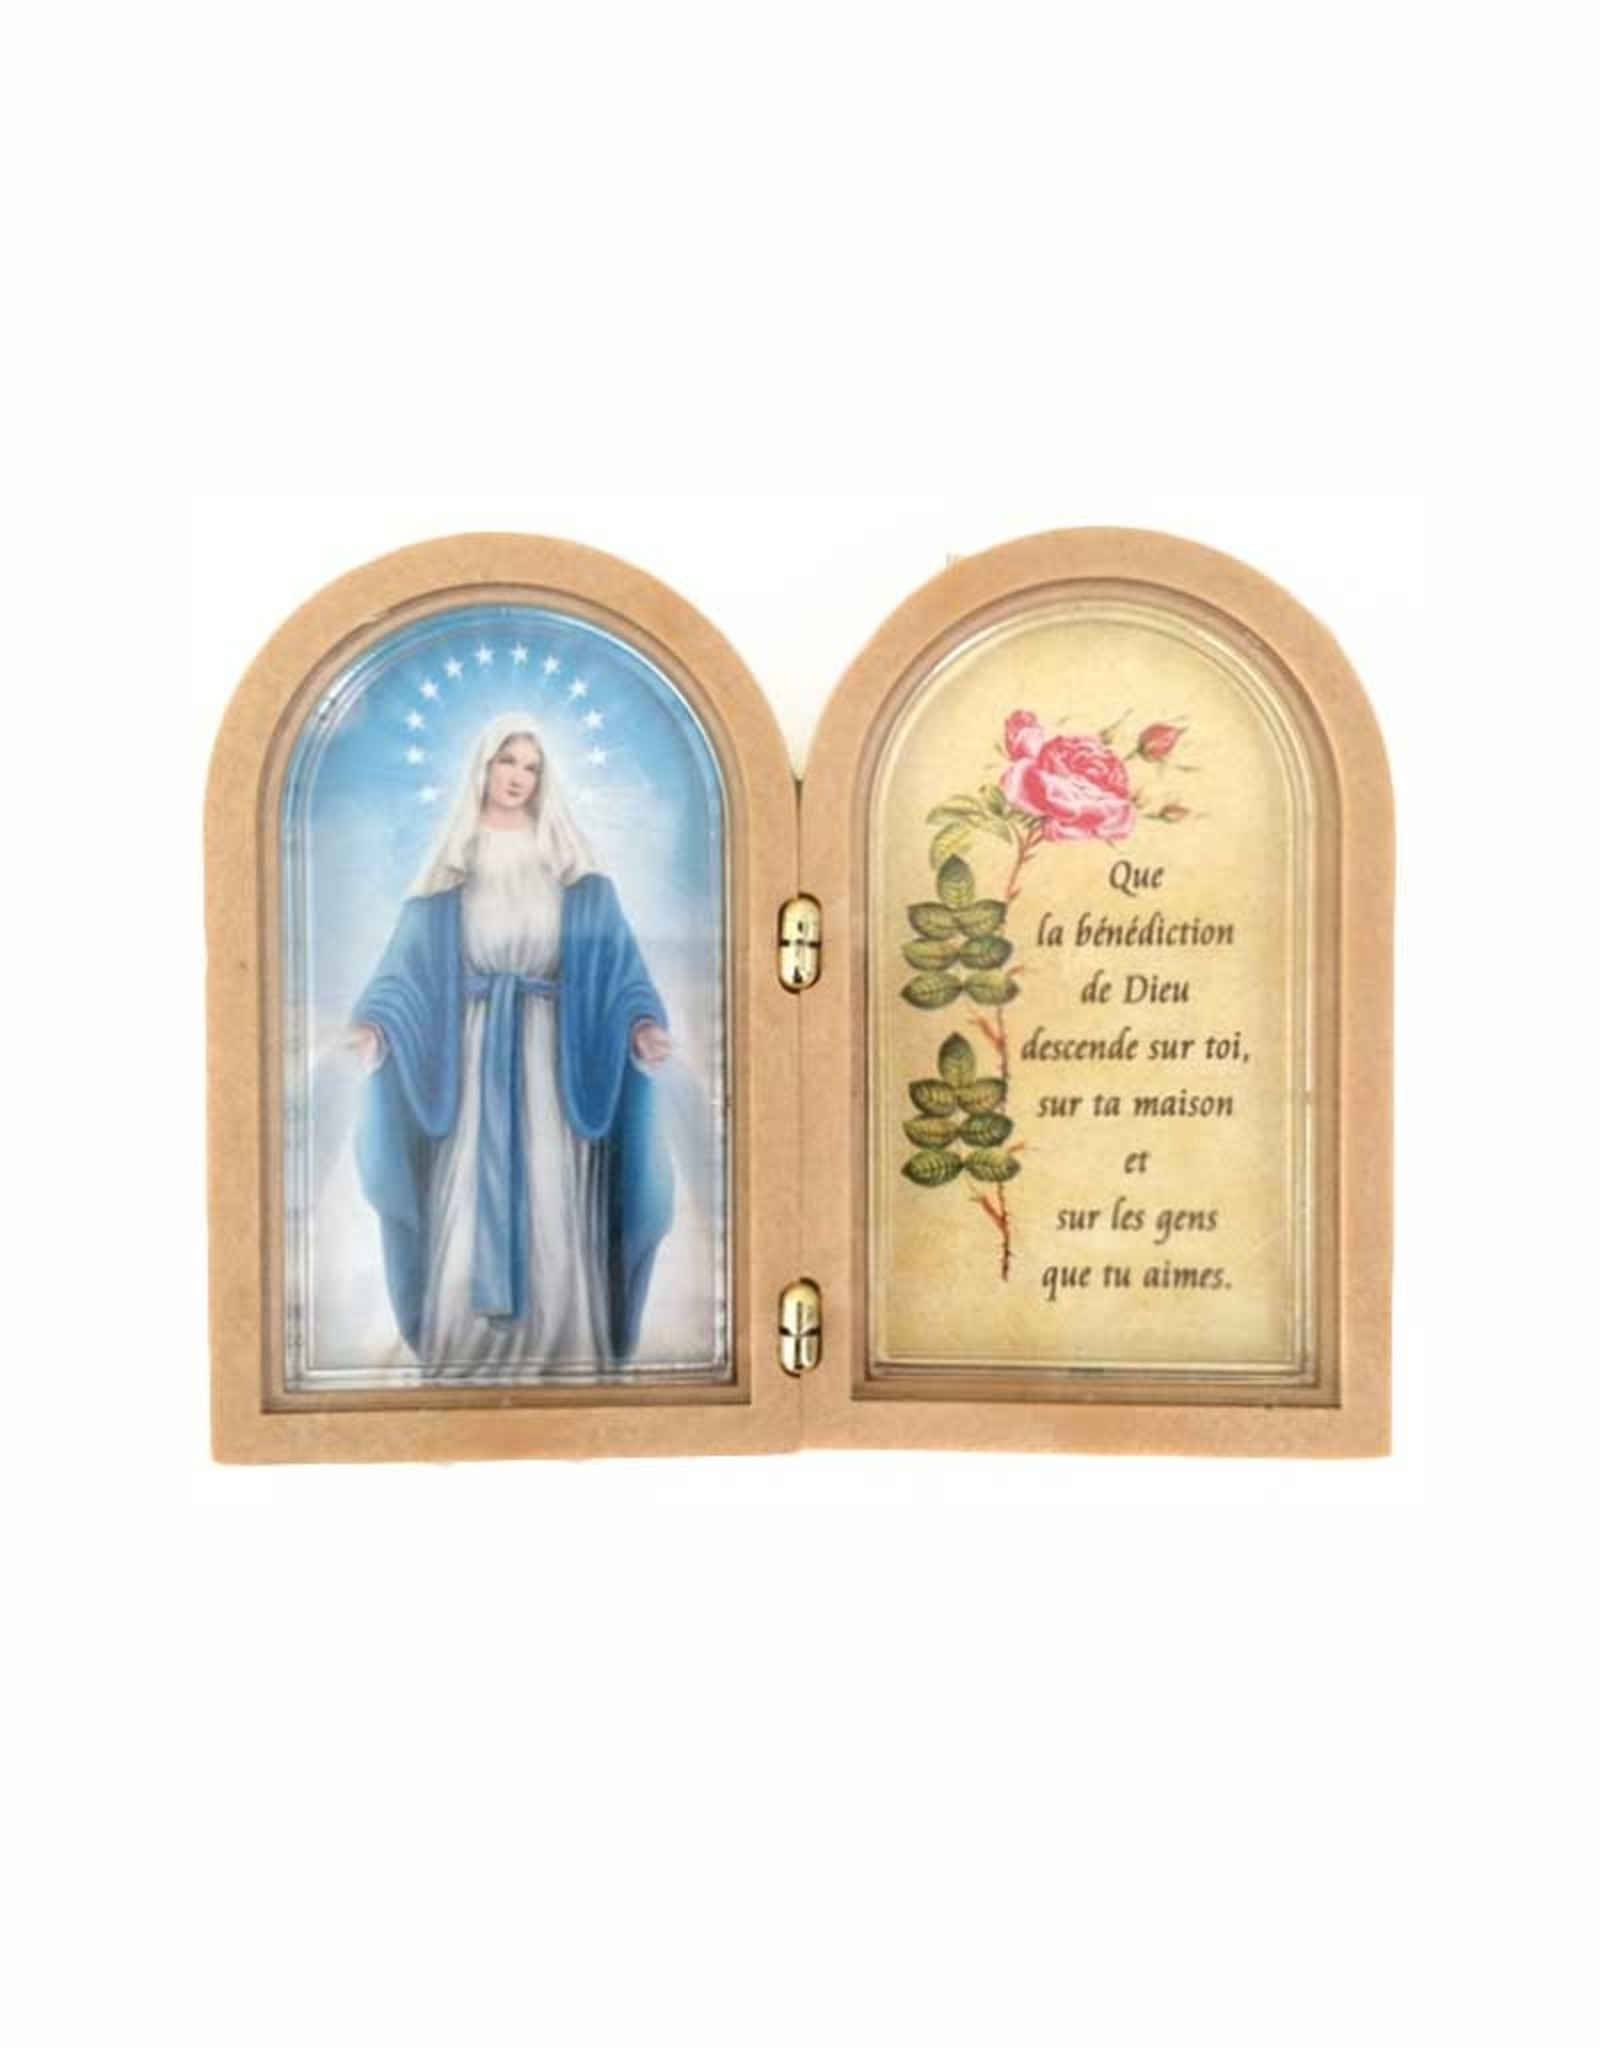 Small Virgin Mary double frame with prayer (french)